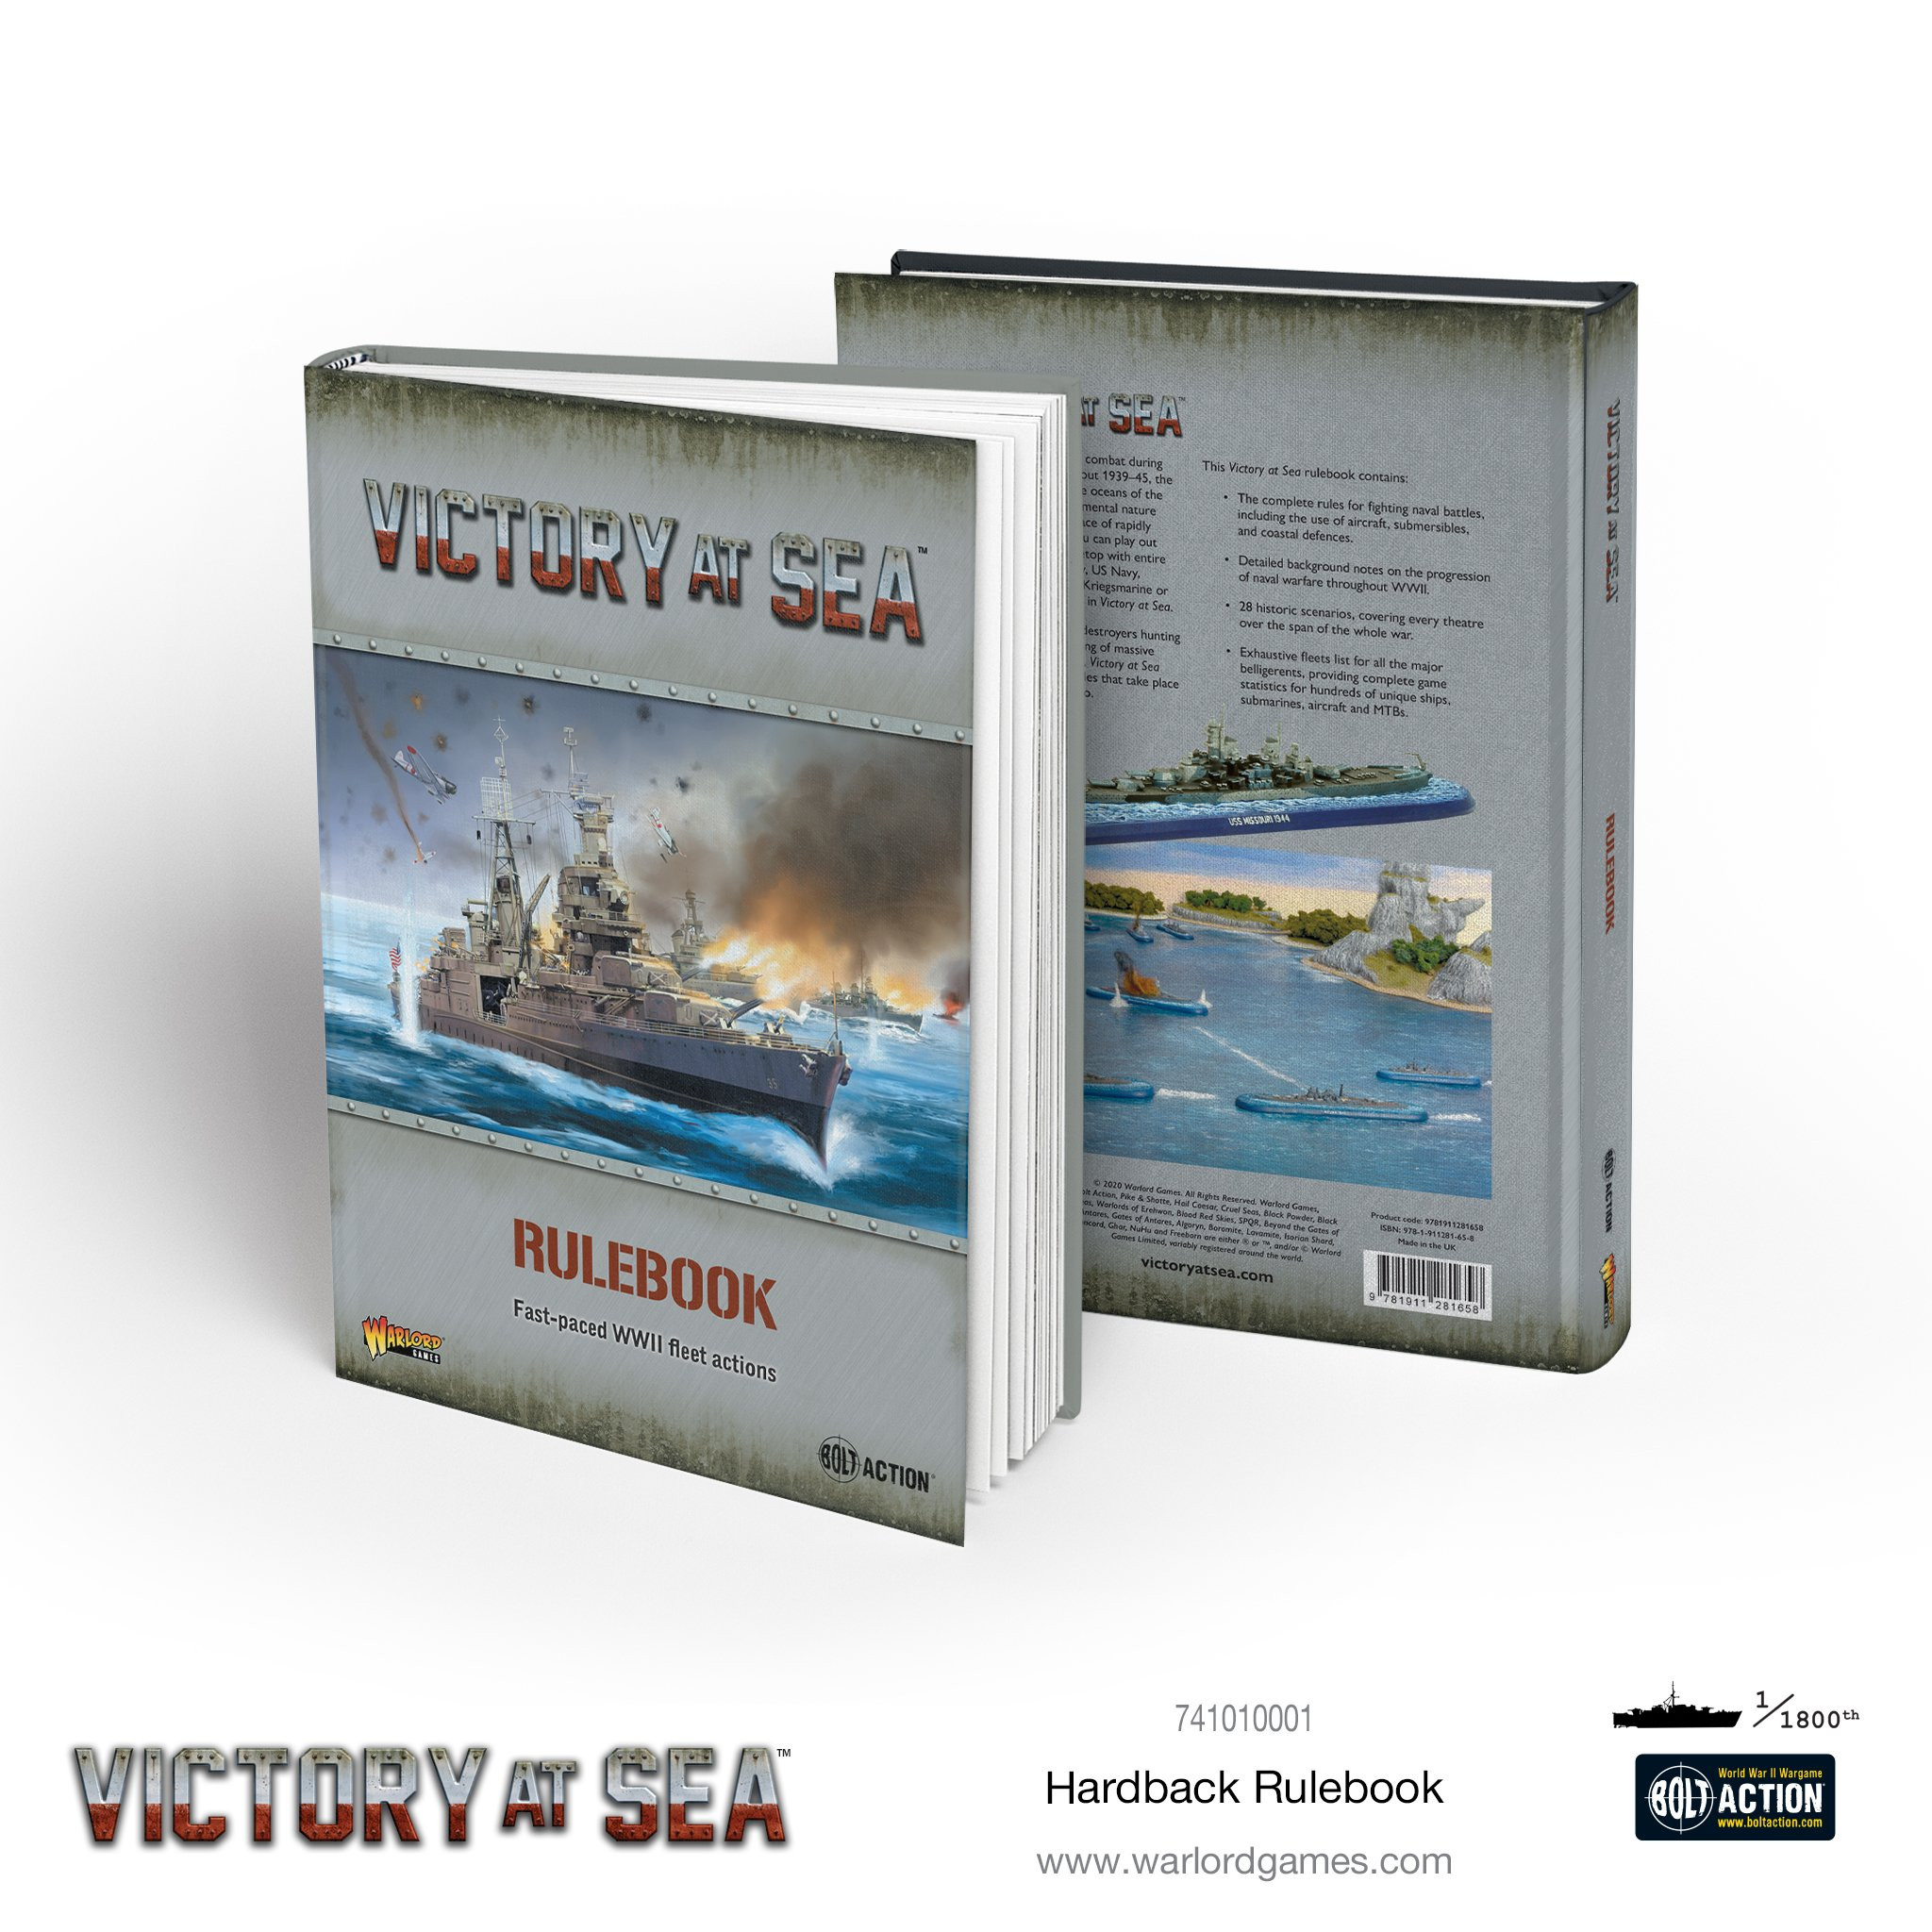 Victory at Sea Rulebook Hardback